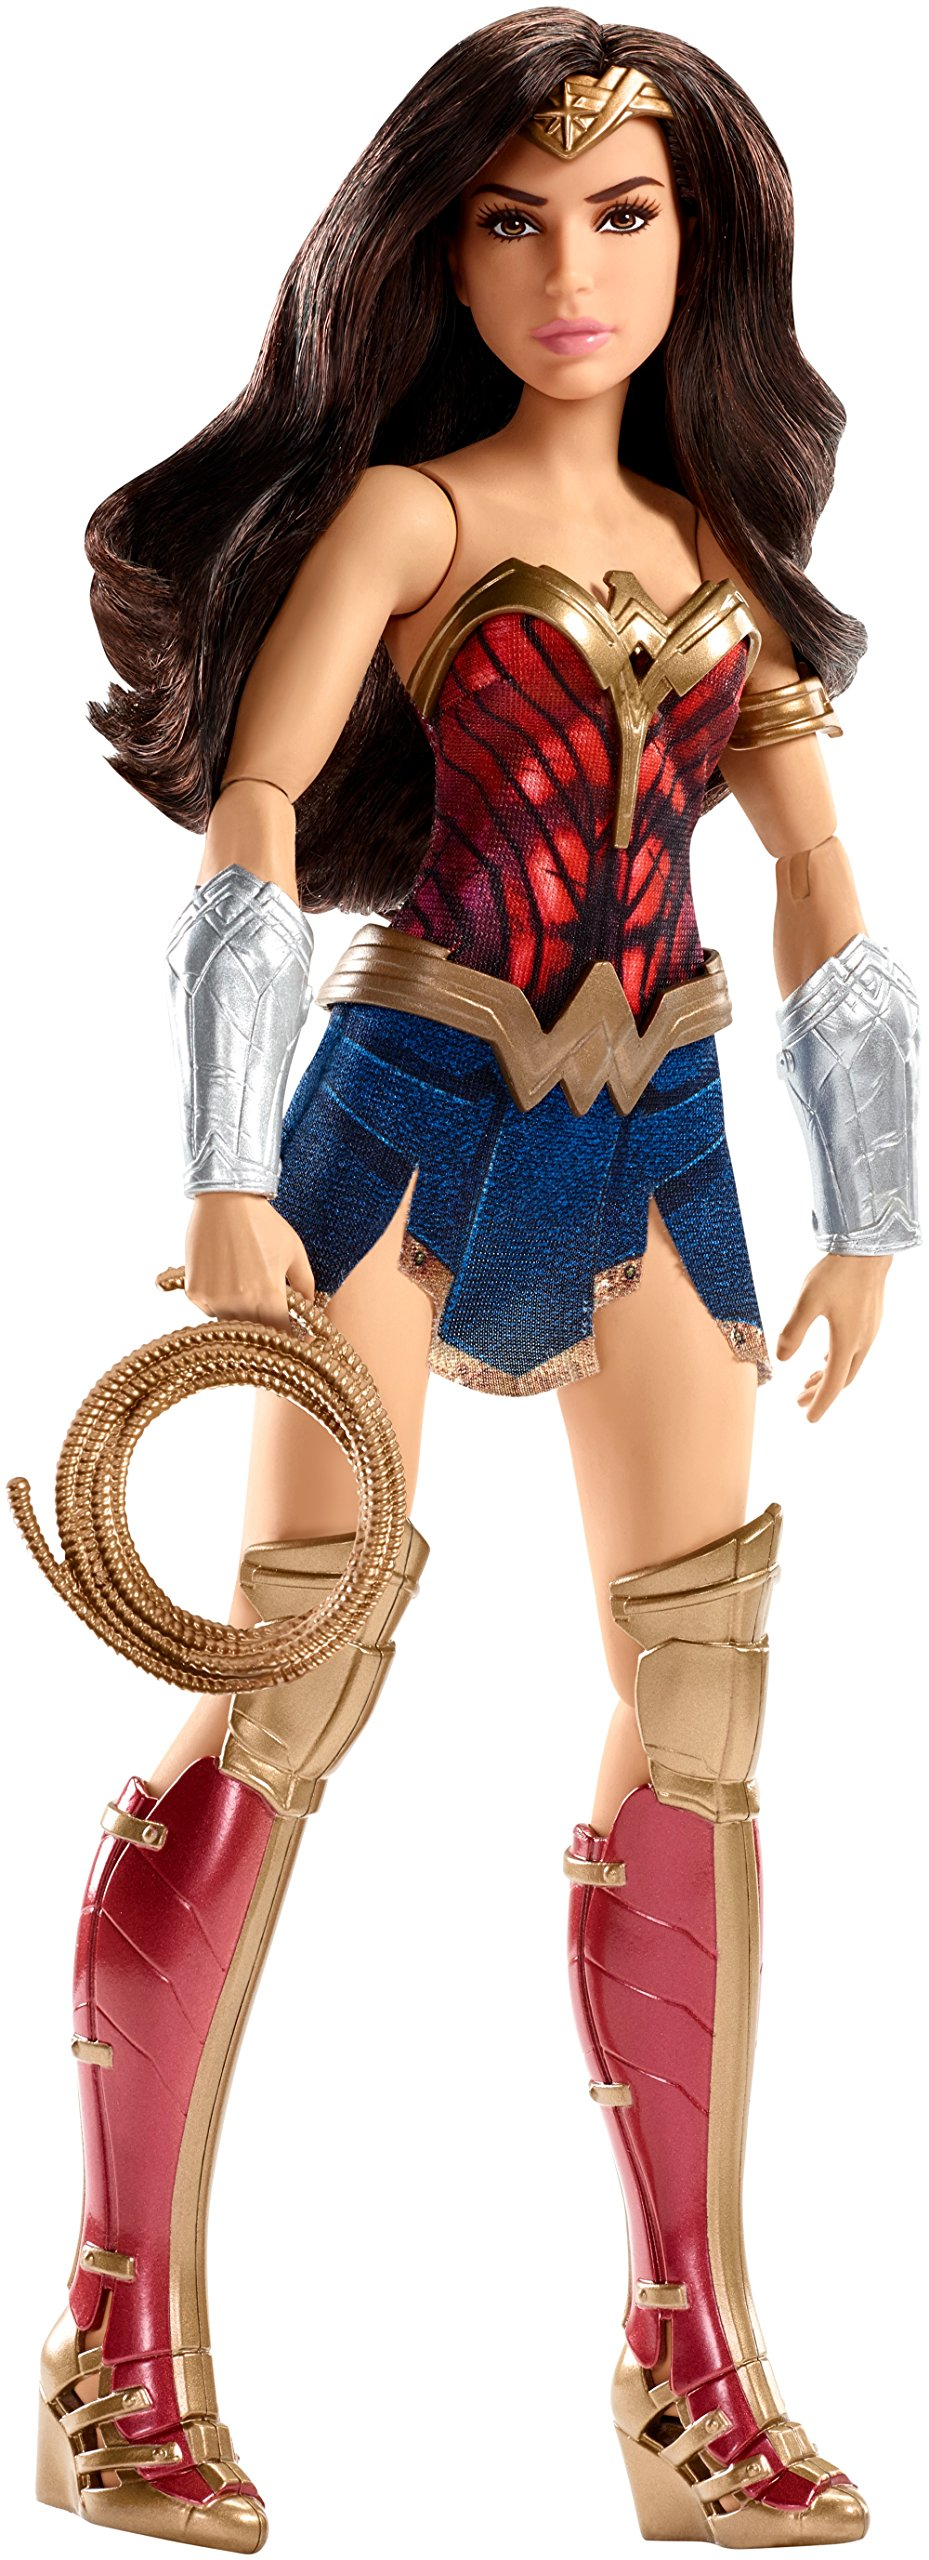 Mattel DC Wonder Woman Battle-Ready Doll, 12''